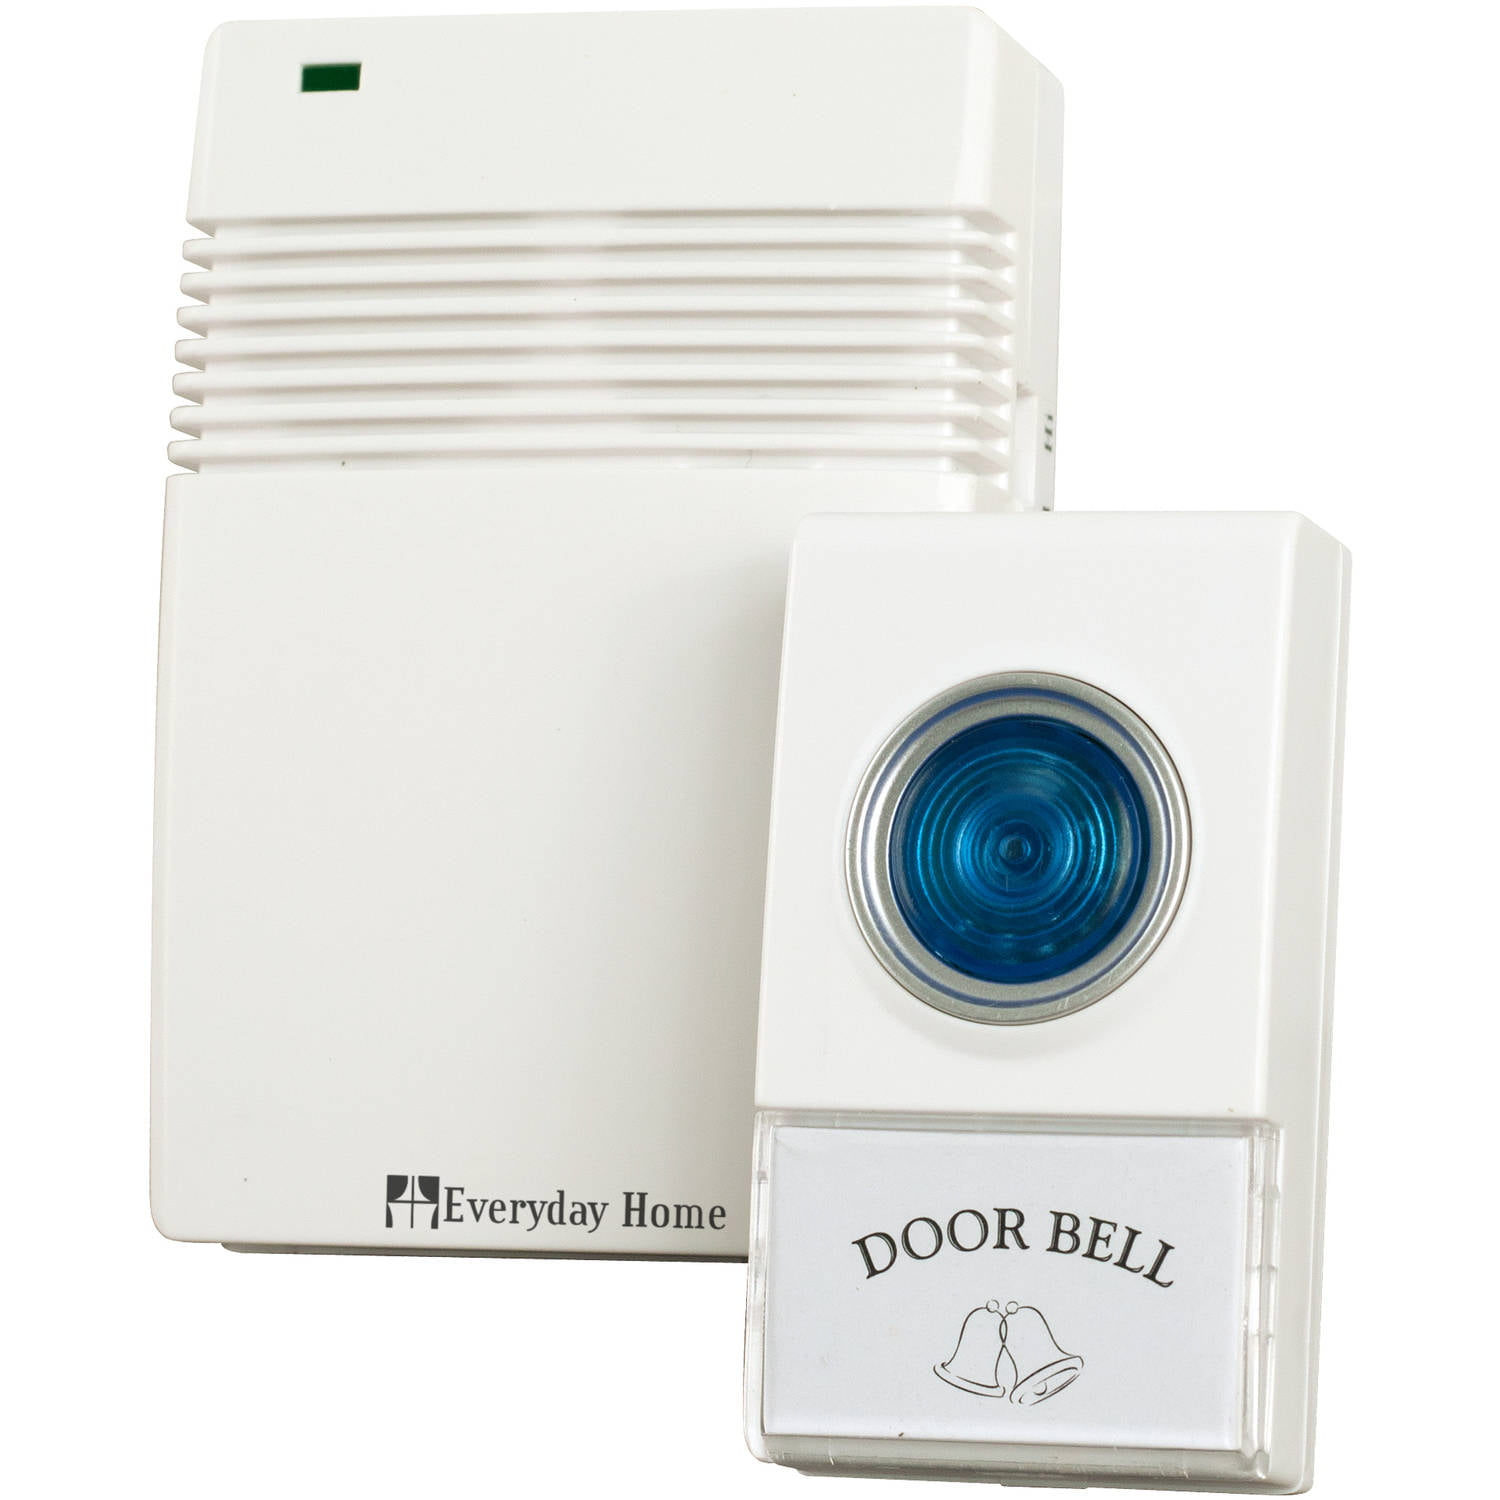 Bon Etekcity Plug In Wireless Doorbell Kit: 1000 Feet, 52 Chimes, 4 Level  Volume   Walmart.com